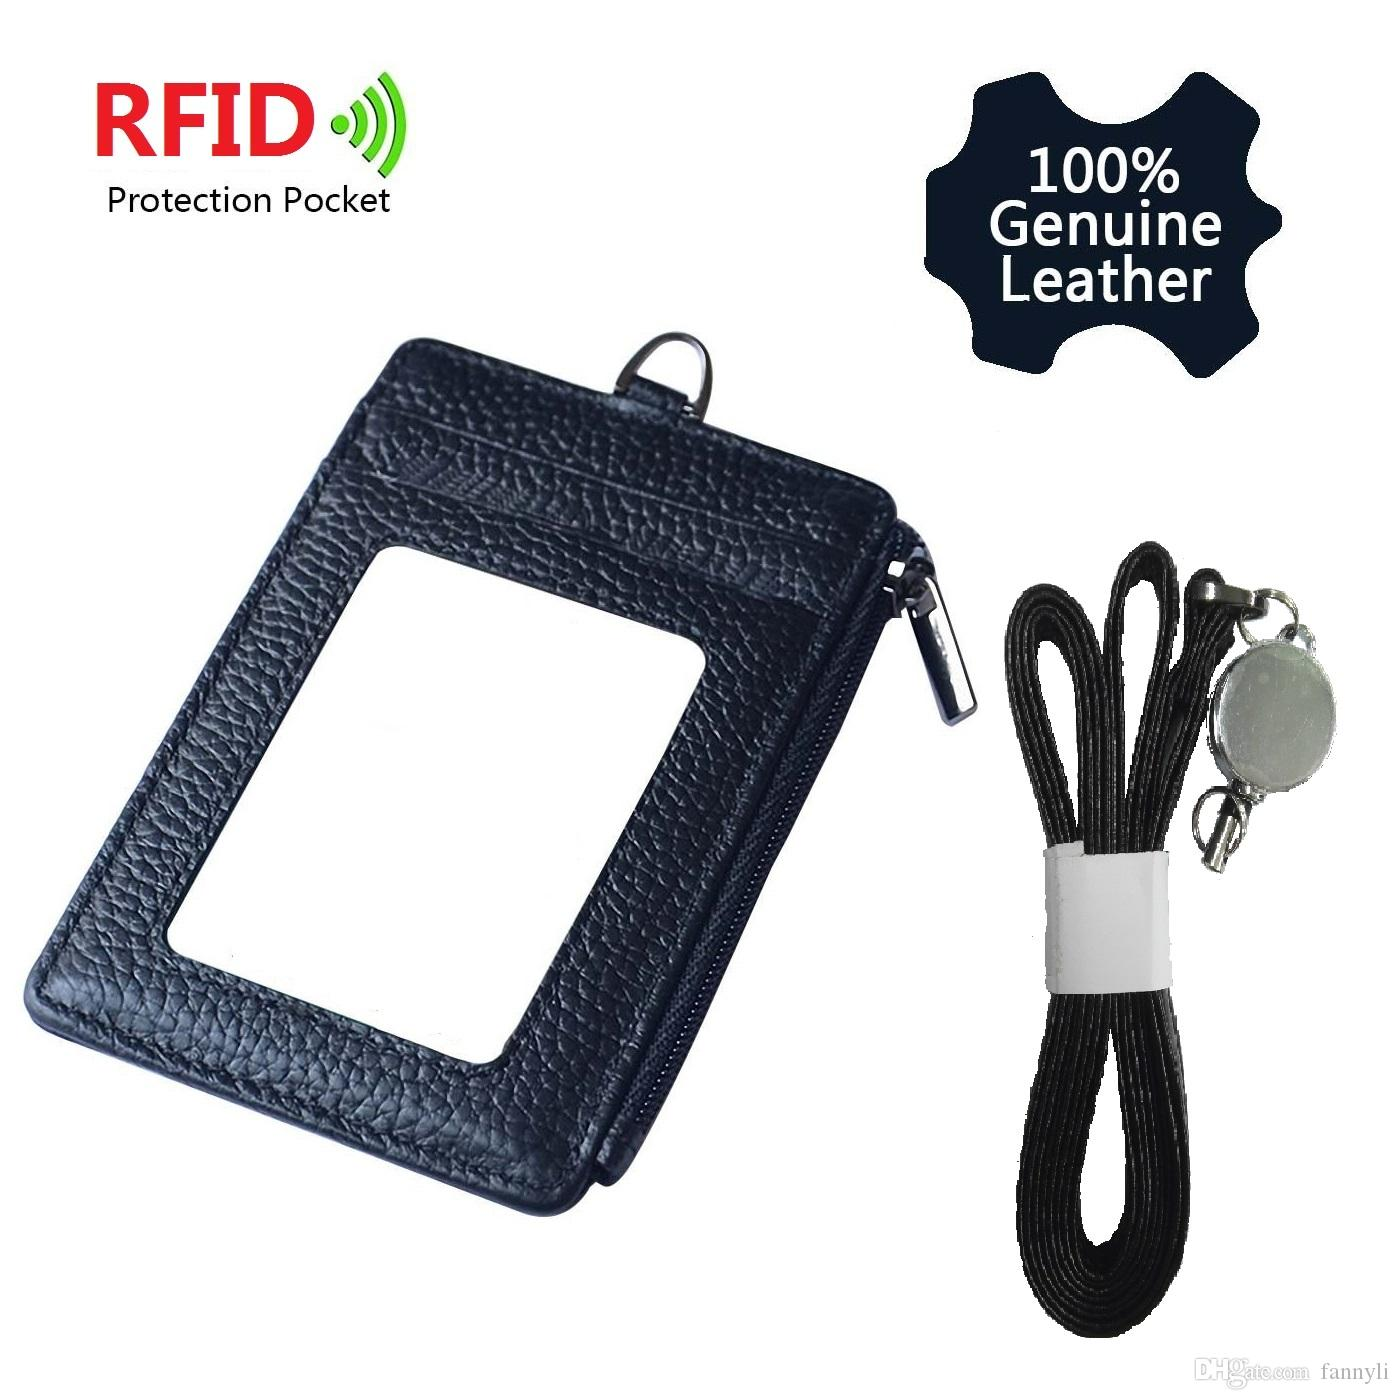 Genuine Leather Credit Card Holder Wallet ID Badge Case with Neck Strap